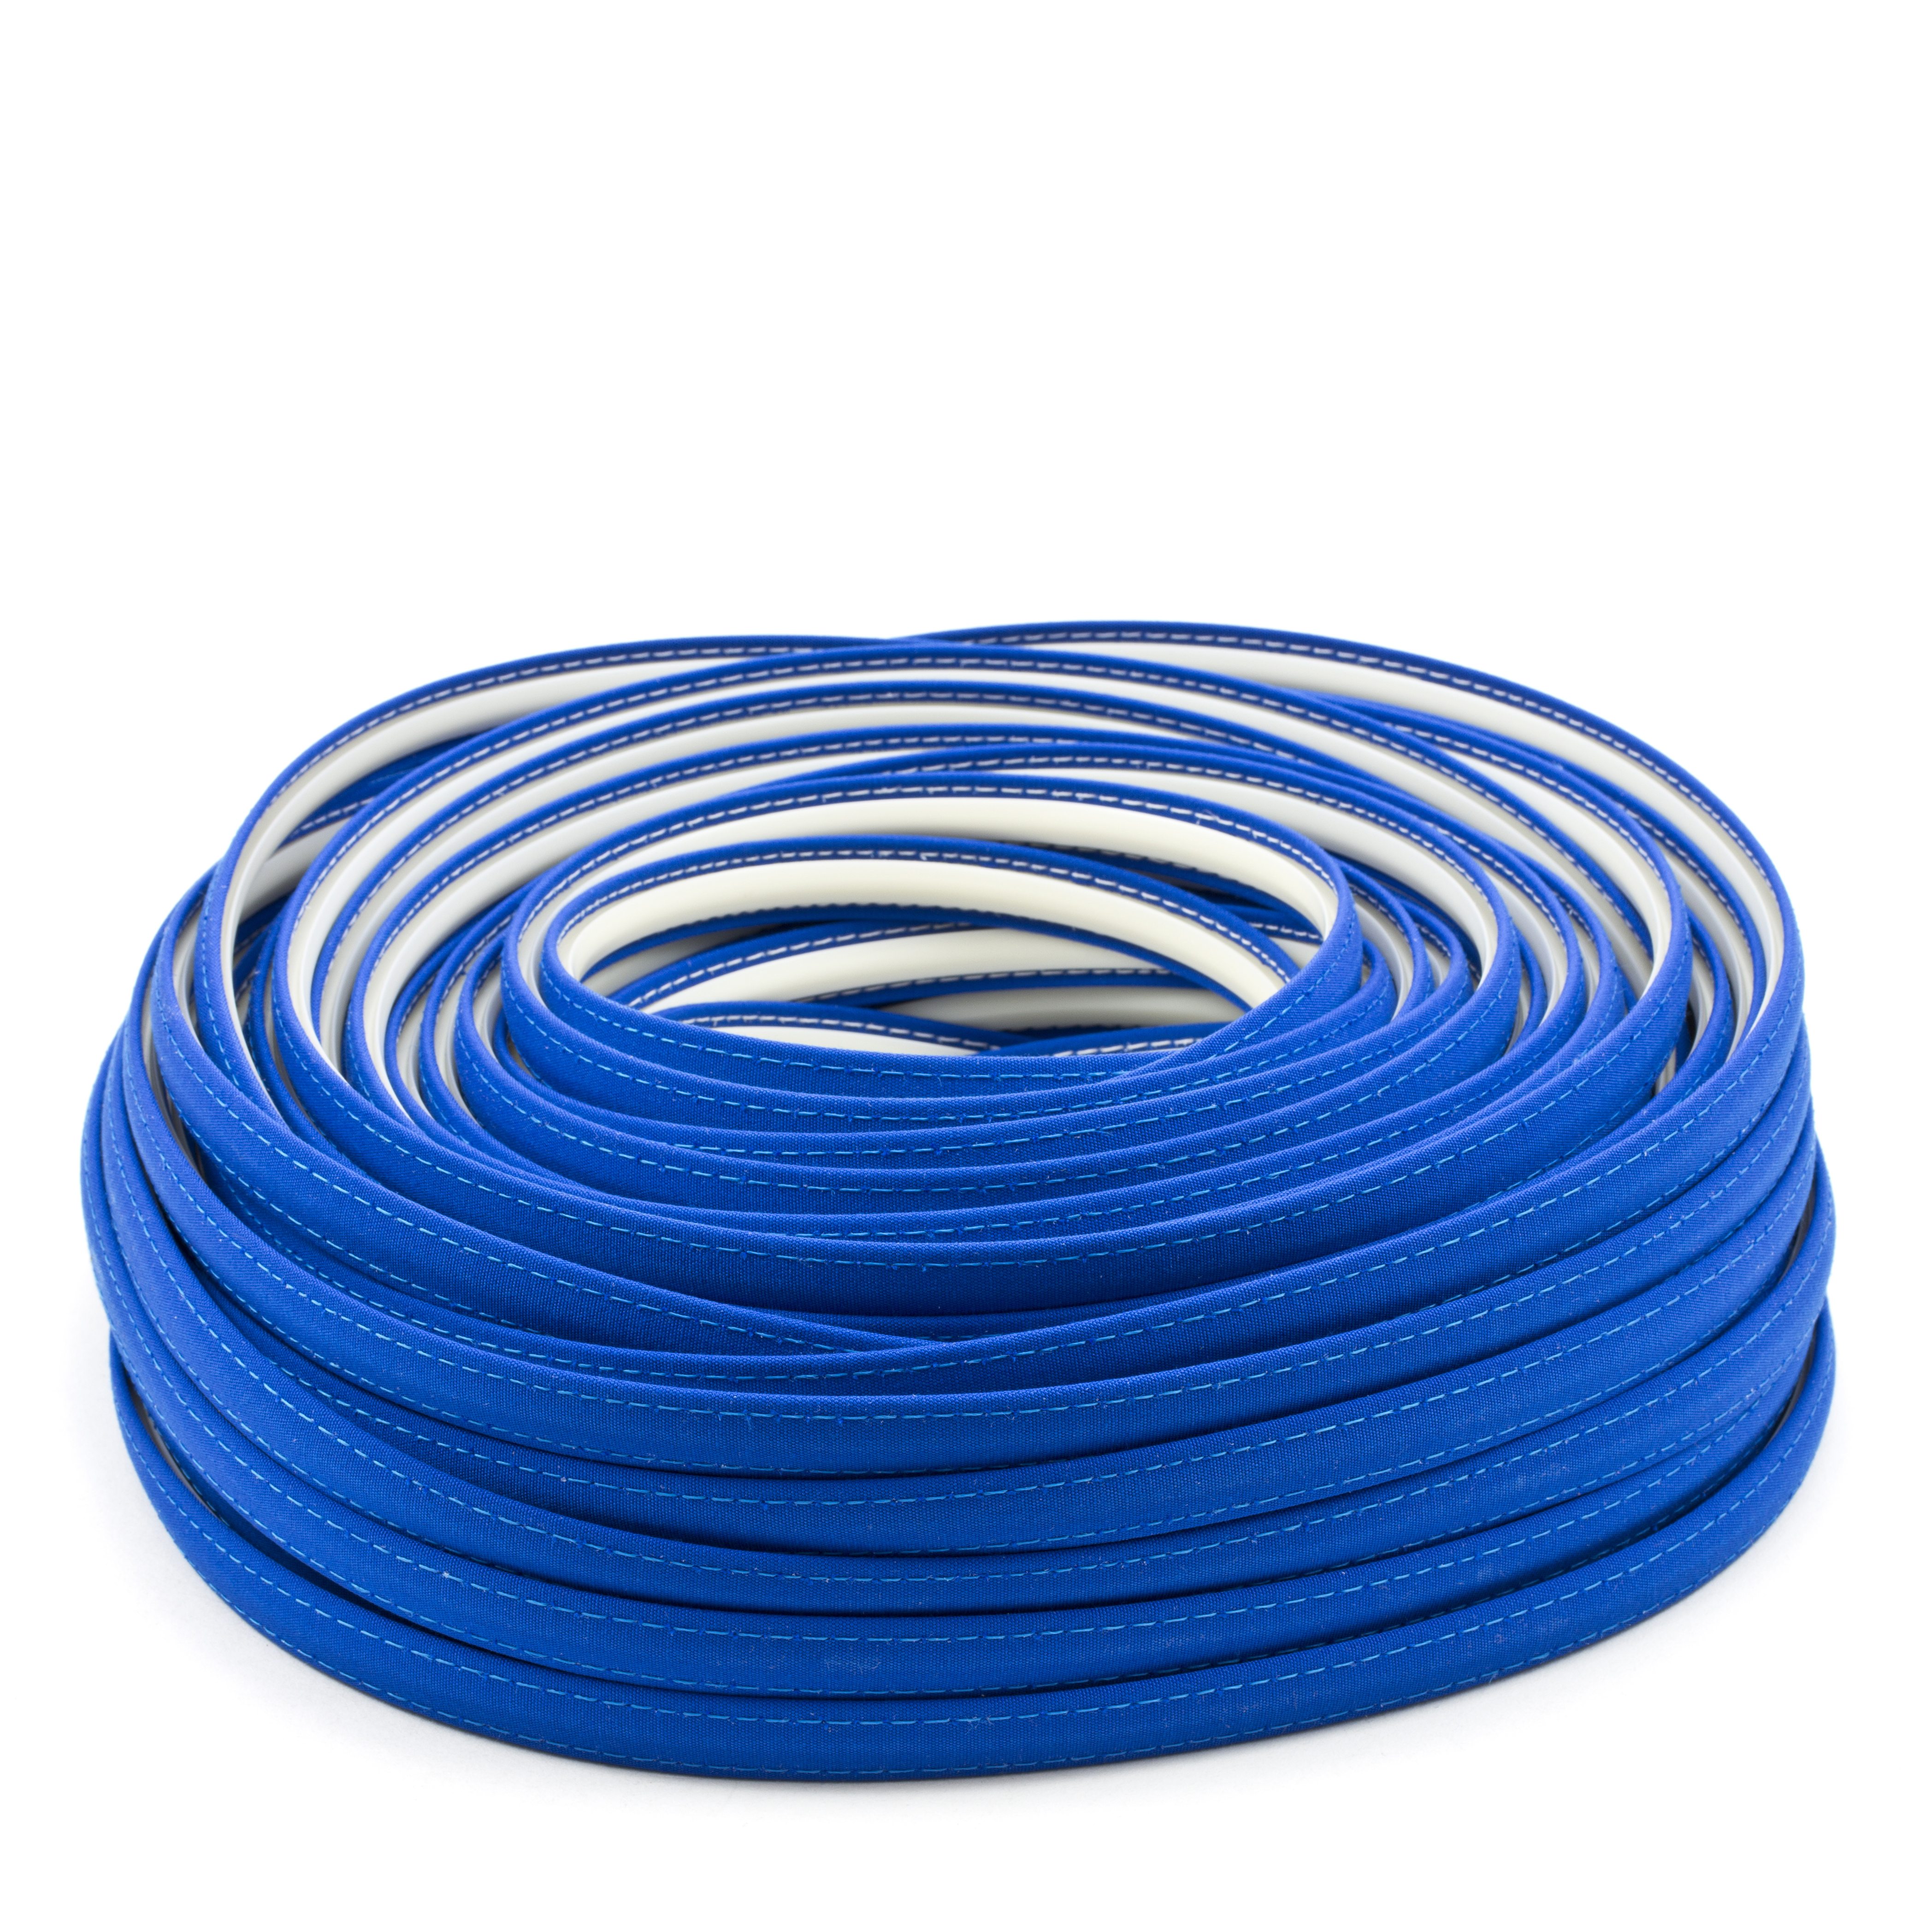 Steel Stitch Sunbrella Covered ZipStrip #6001 Pacific Blue 160' Full Rolls Only